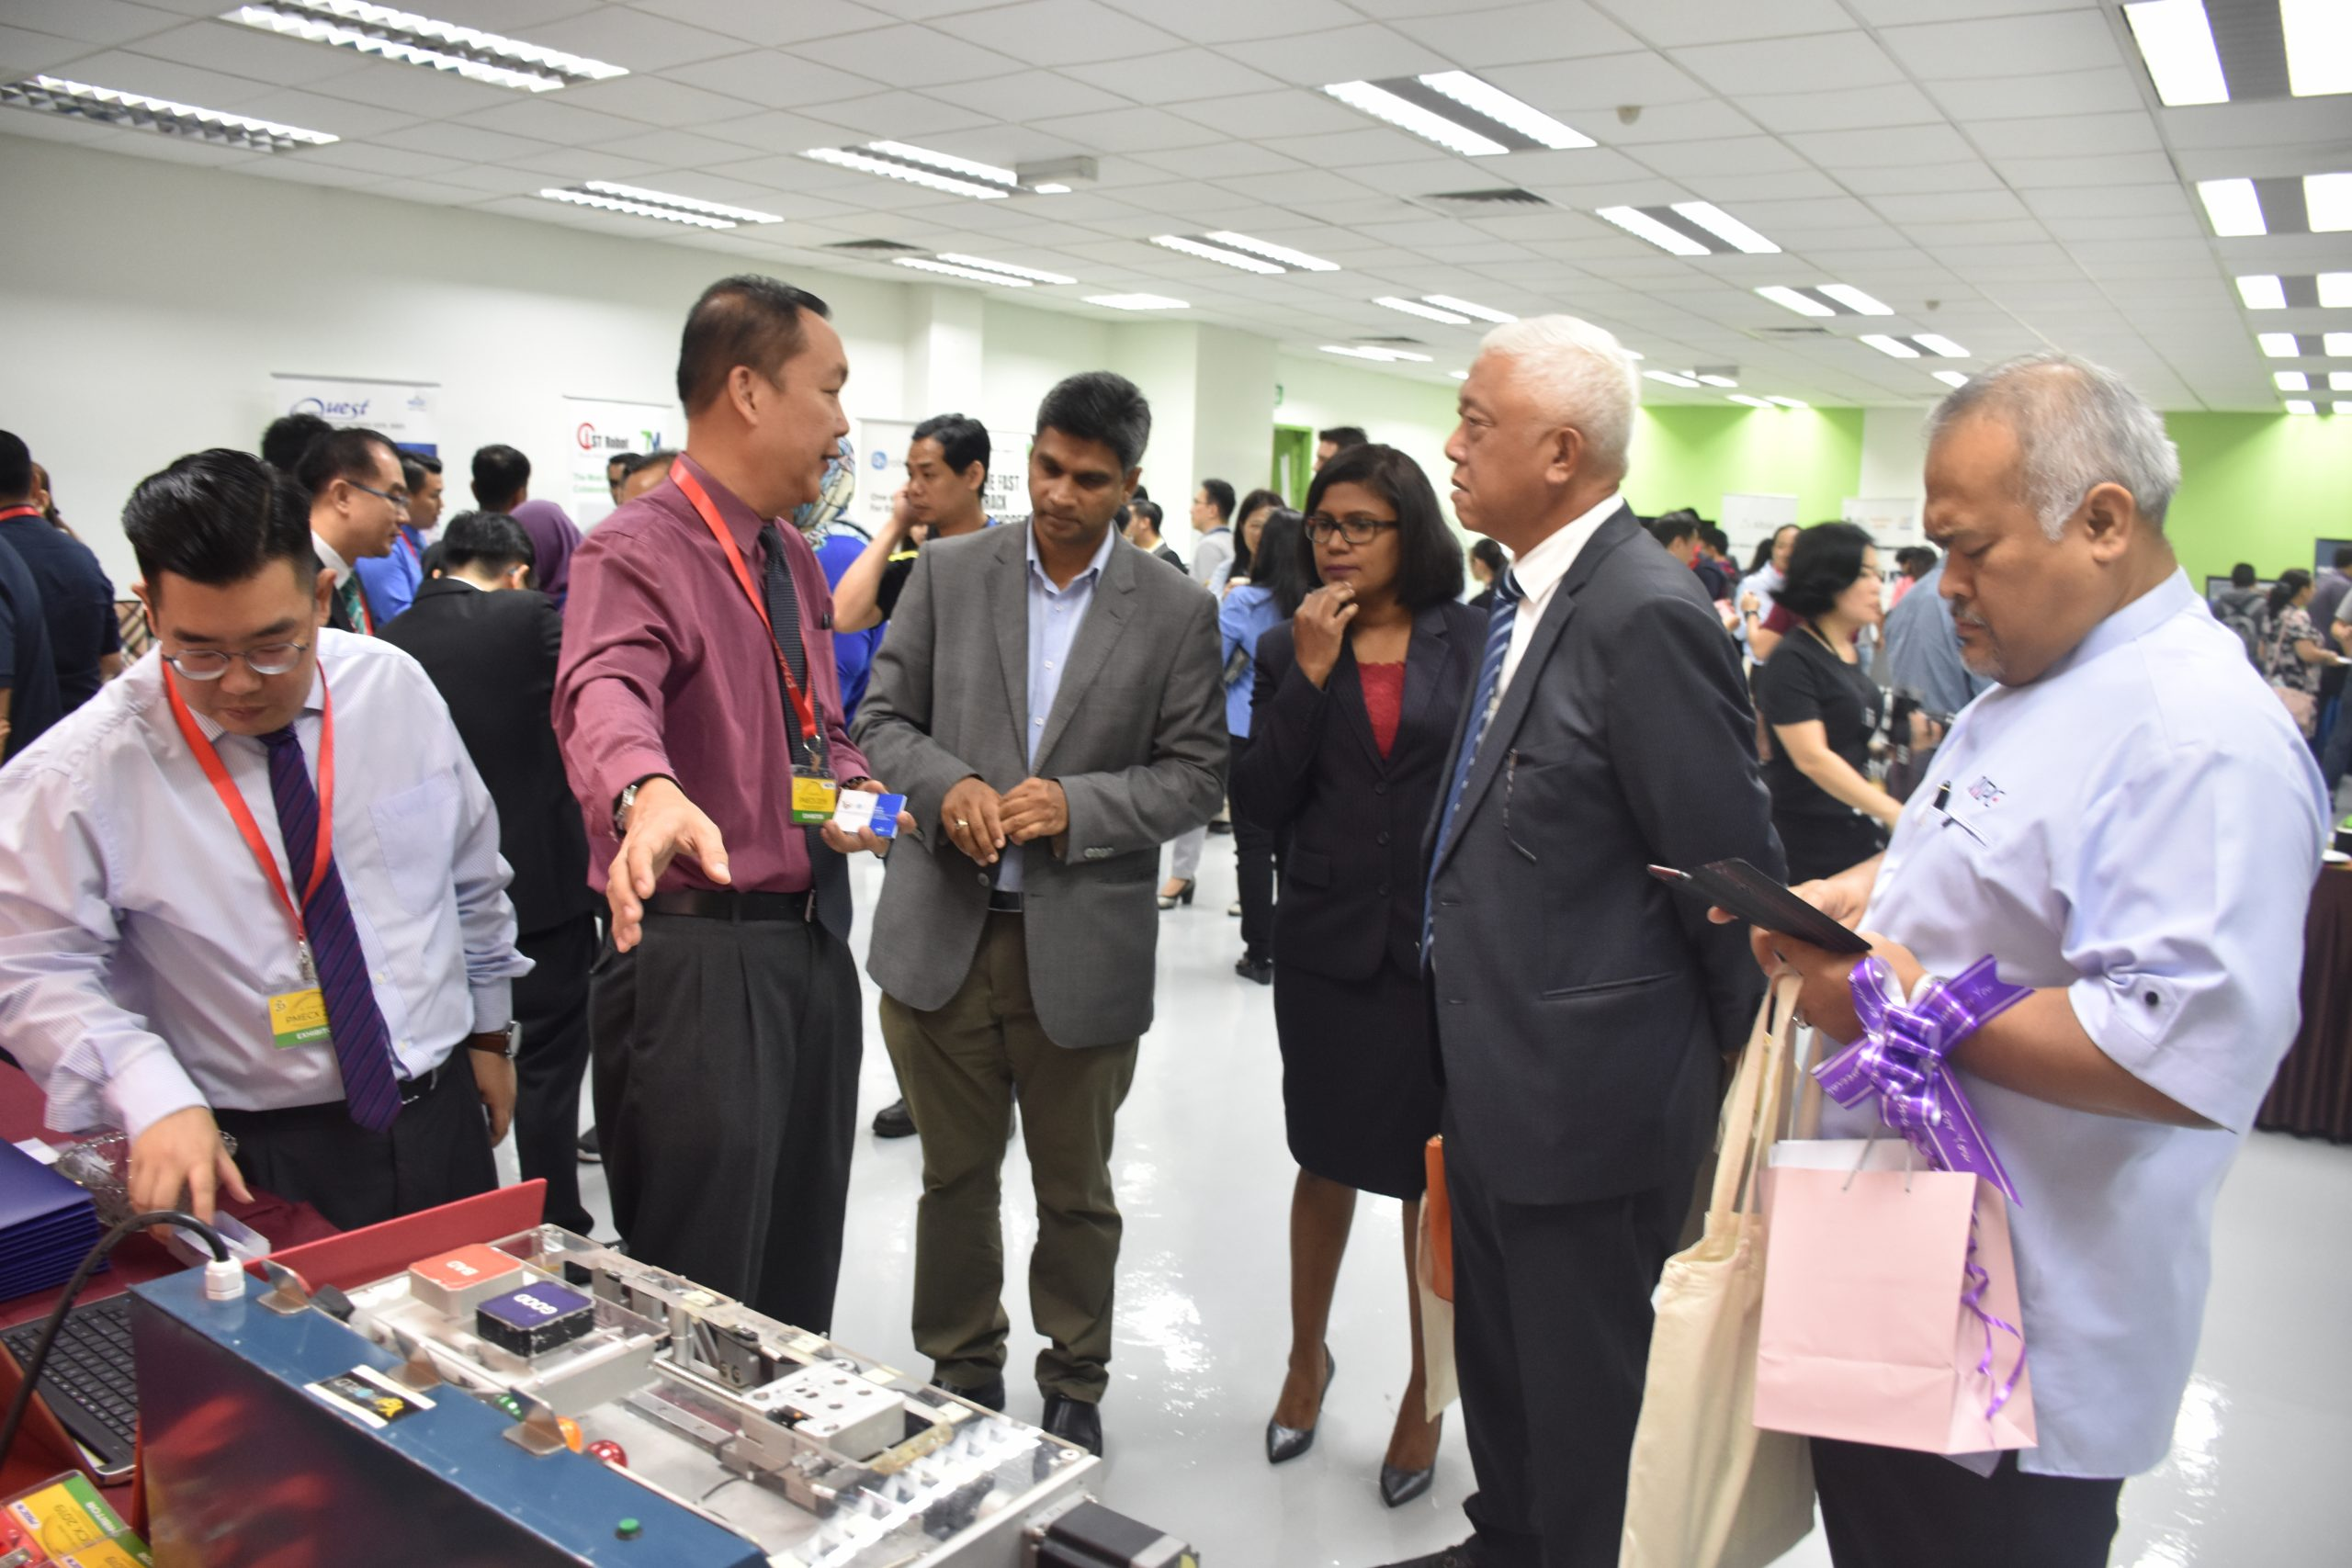 Penang Manufacturing Excellence Conference and Exhibition (PMECX)